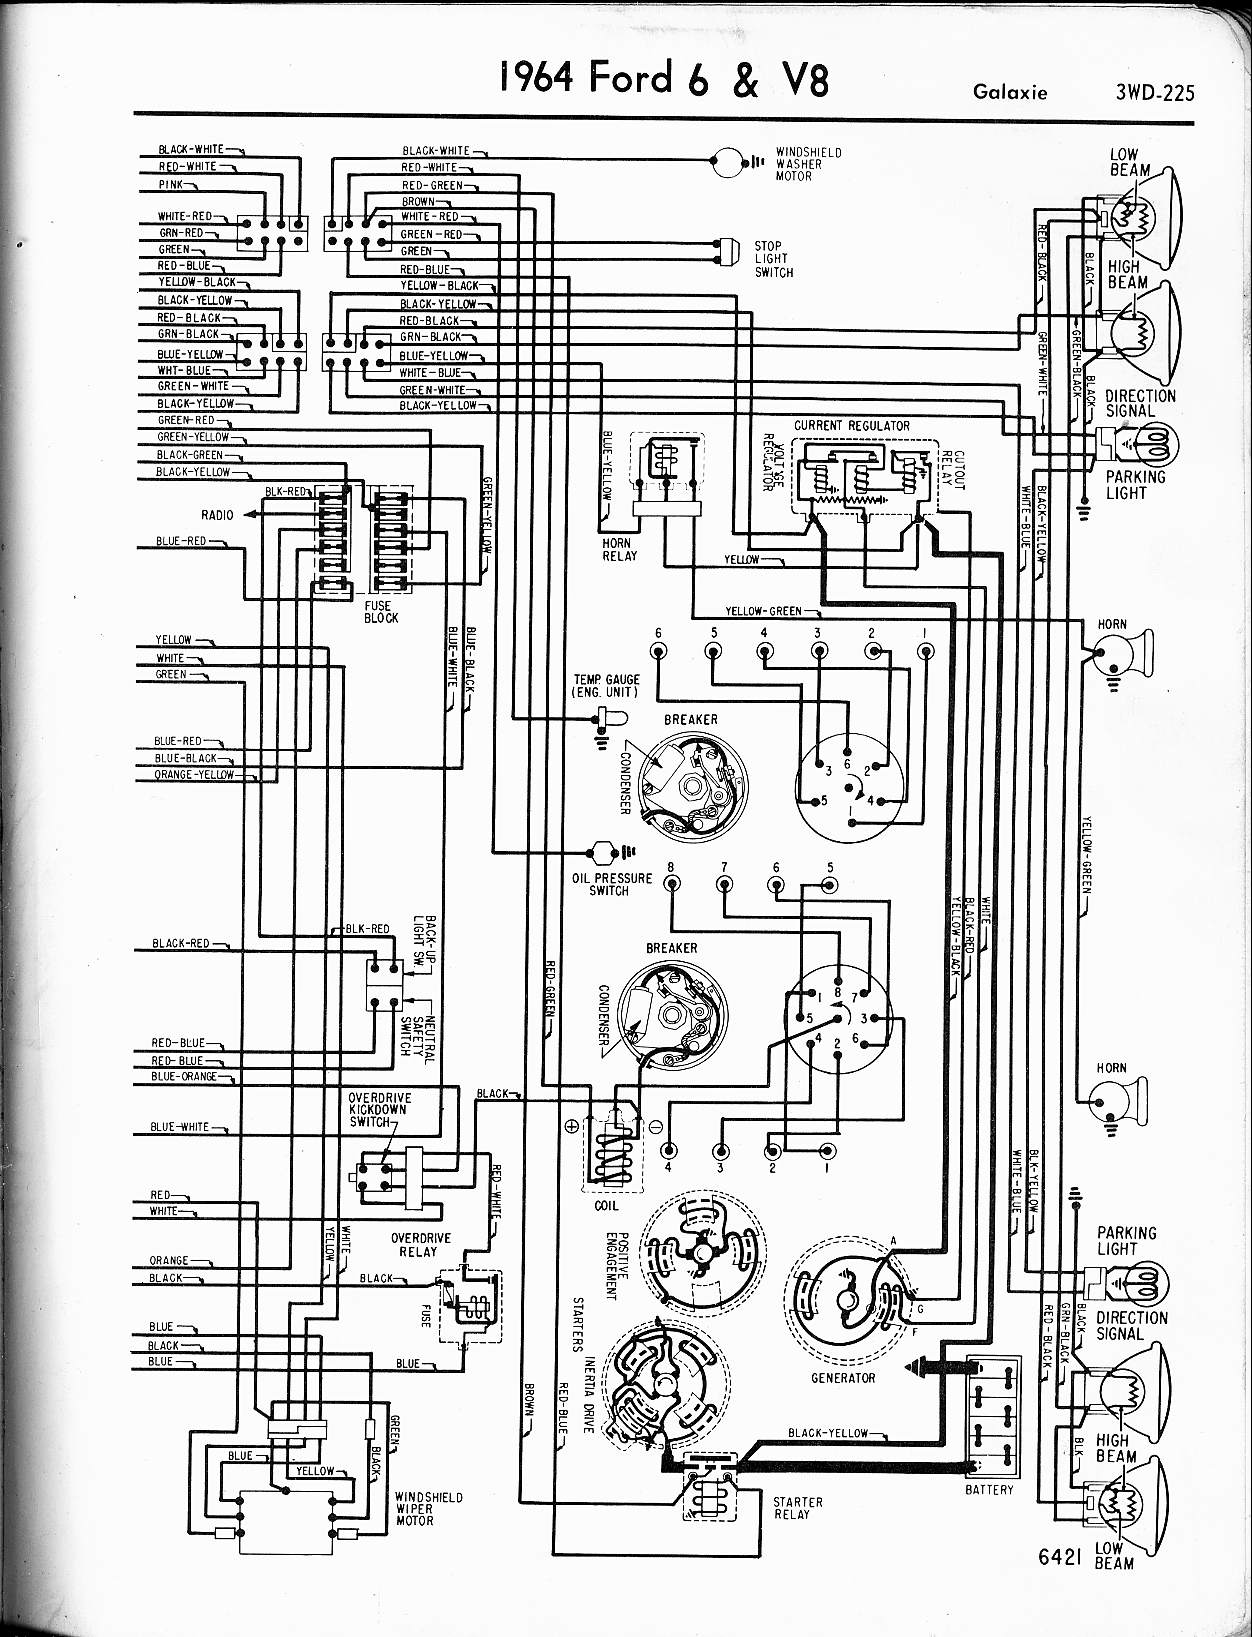 MWire5765 225 57 65 ford wiring diagrams Ford E 350 Wiring Diagrams at edmiracle.co